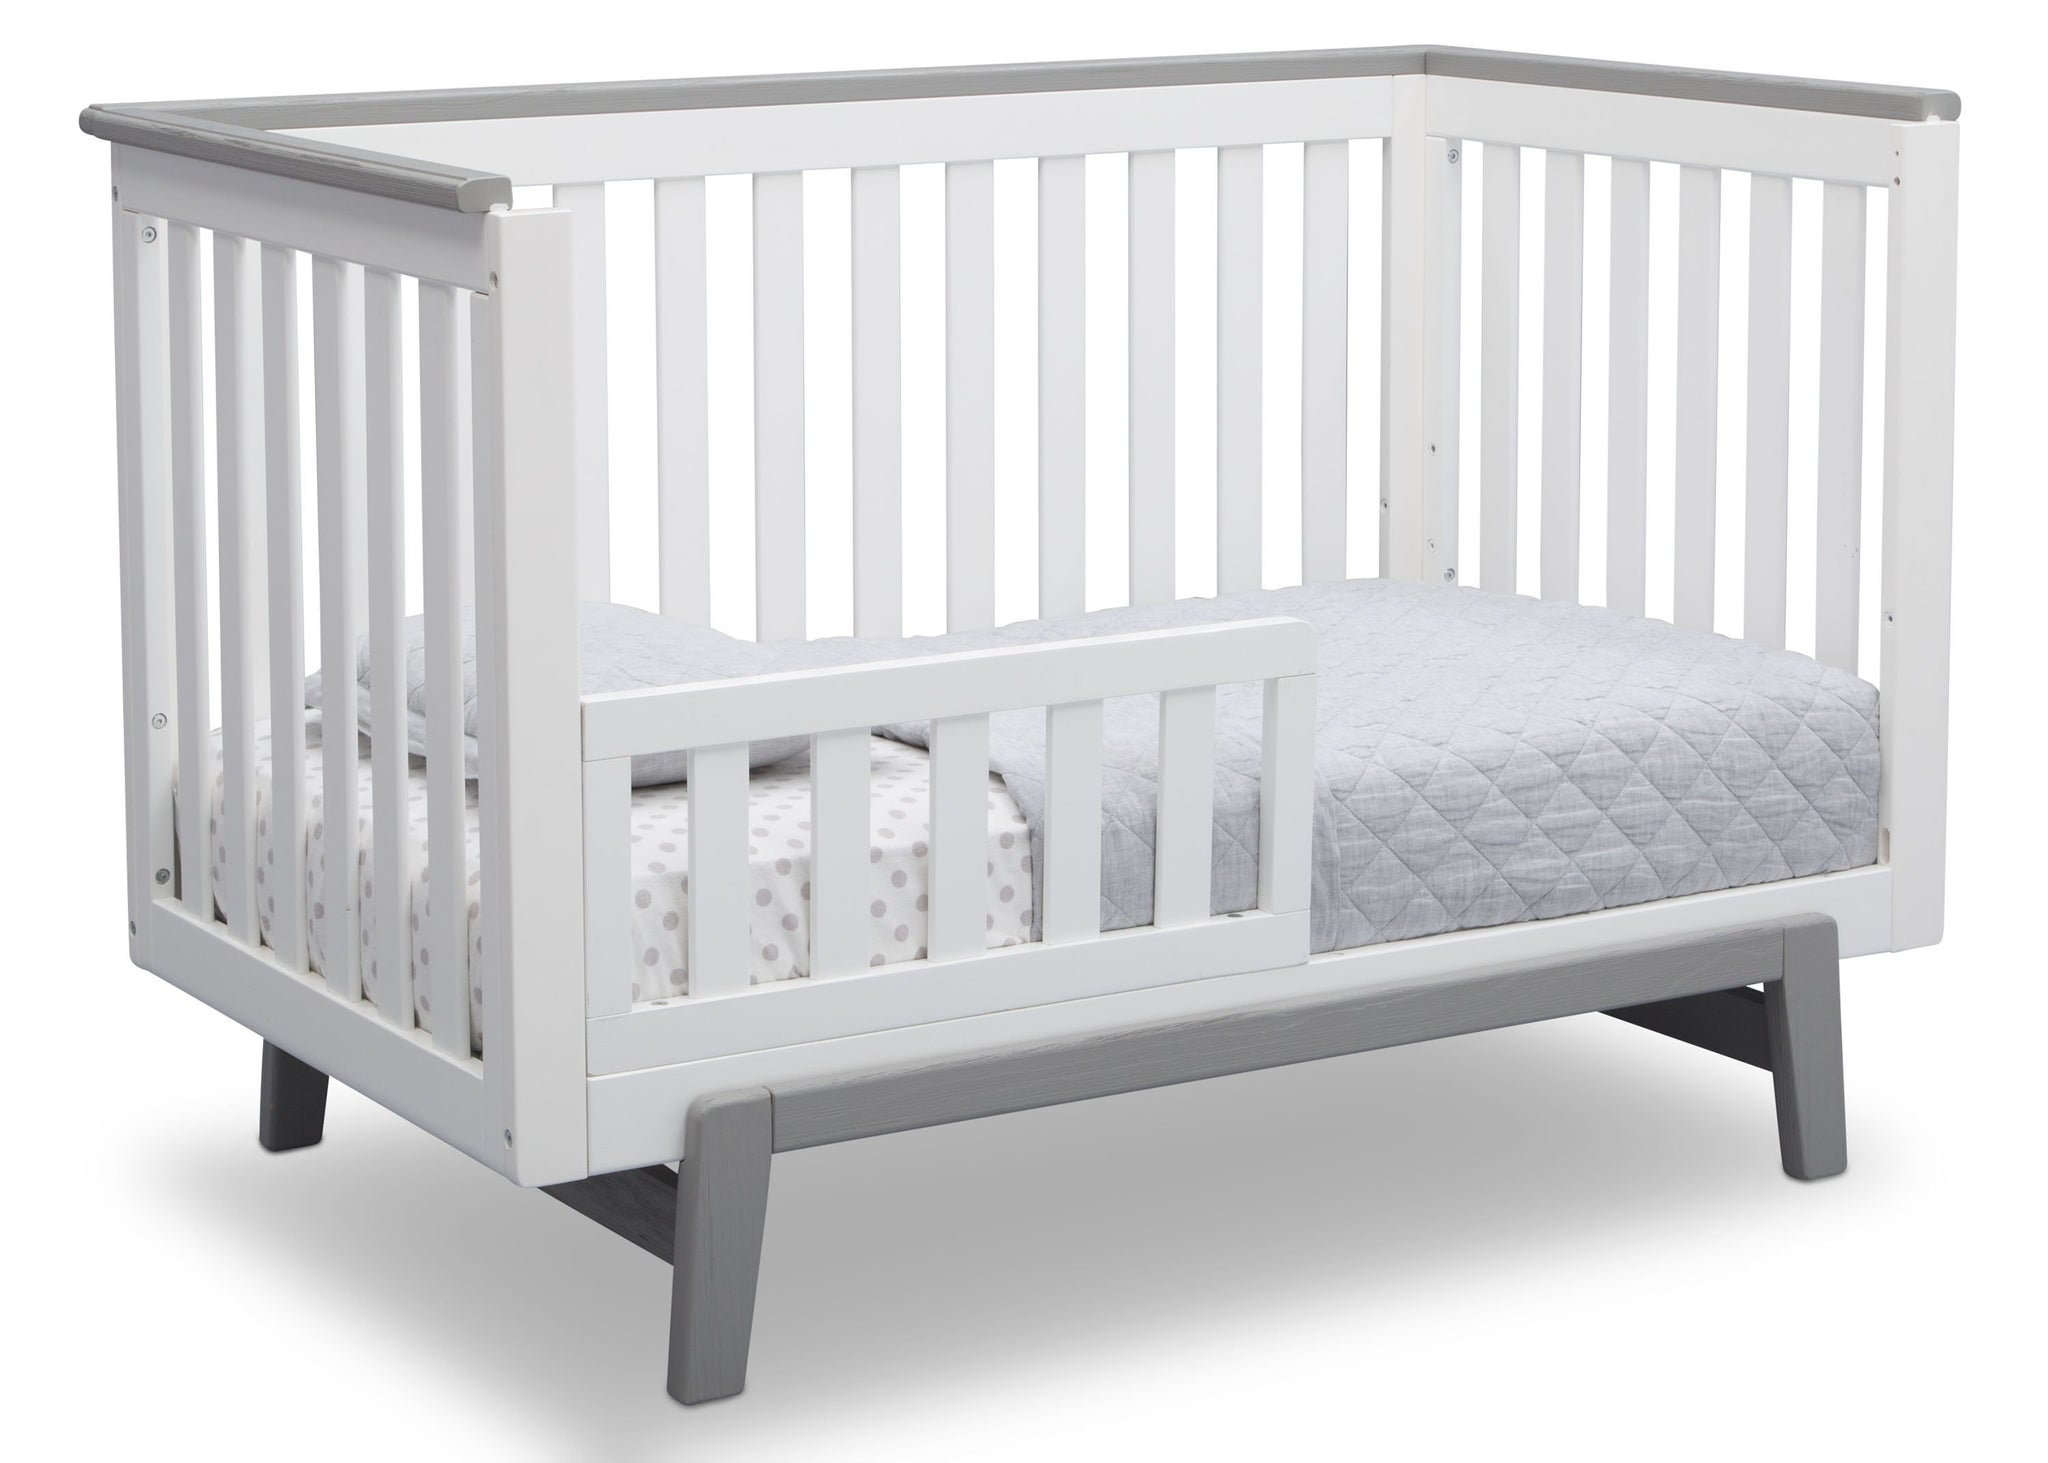 Delta Children Bianca with Rustic Haze (136) Providence Classic 4-in-1 Convertible Crib (548650), Toddler Bed, b4b